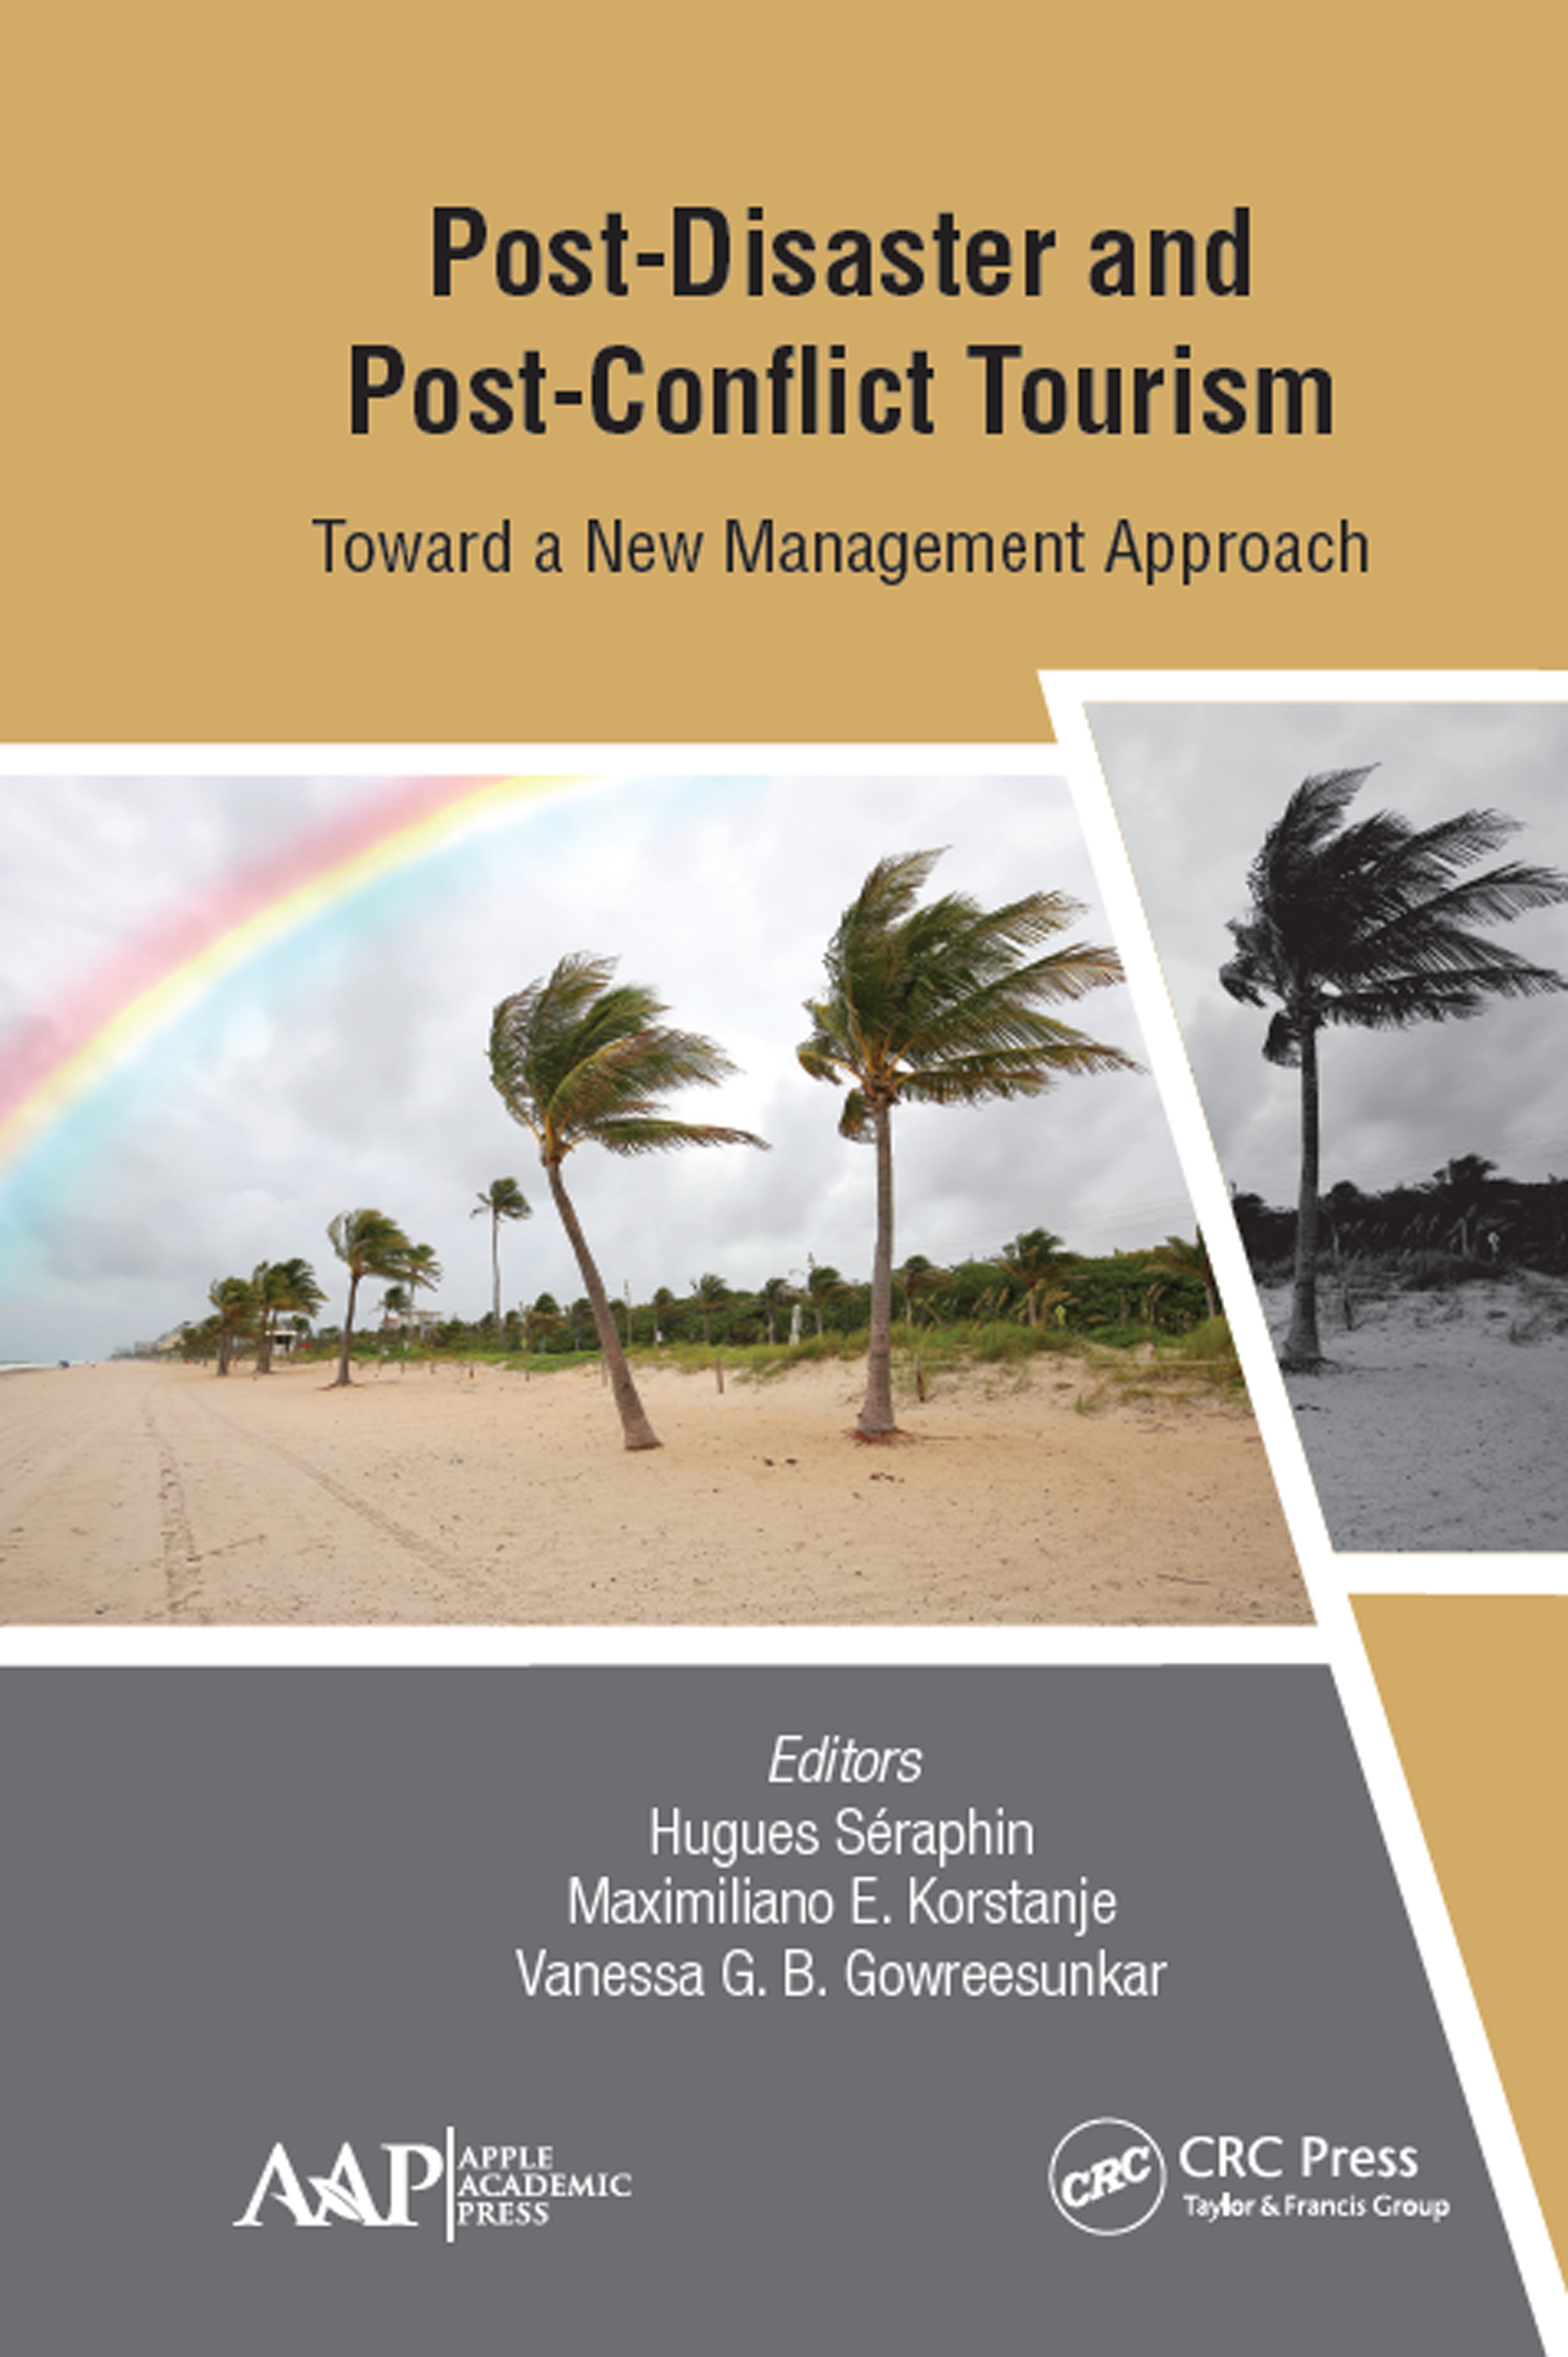 Post-Disaster and Post-Conflict Tourism: Toward a New Management Approach book cover